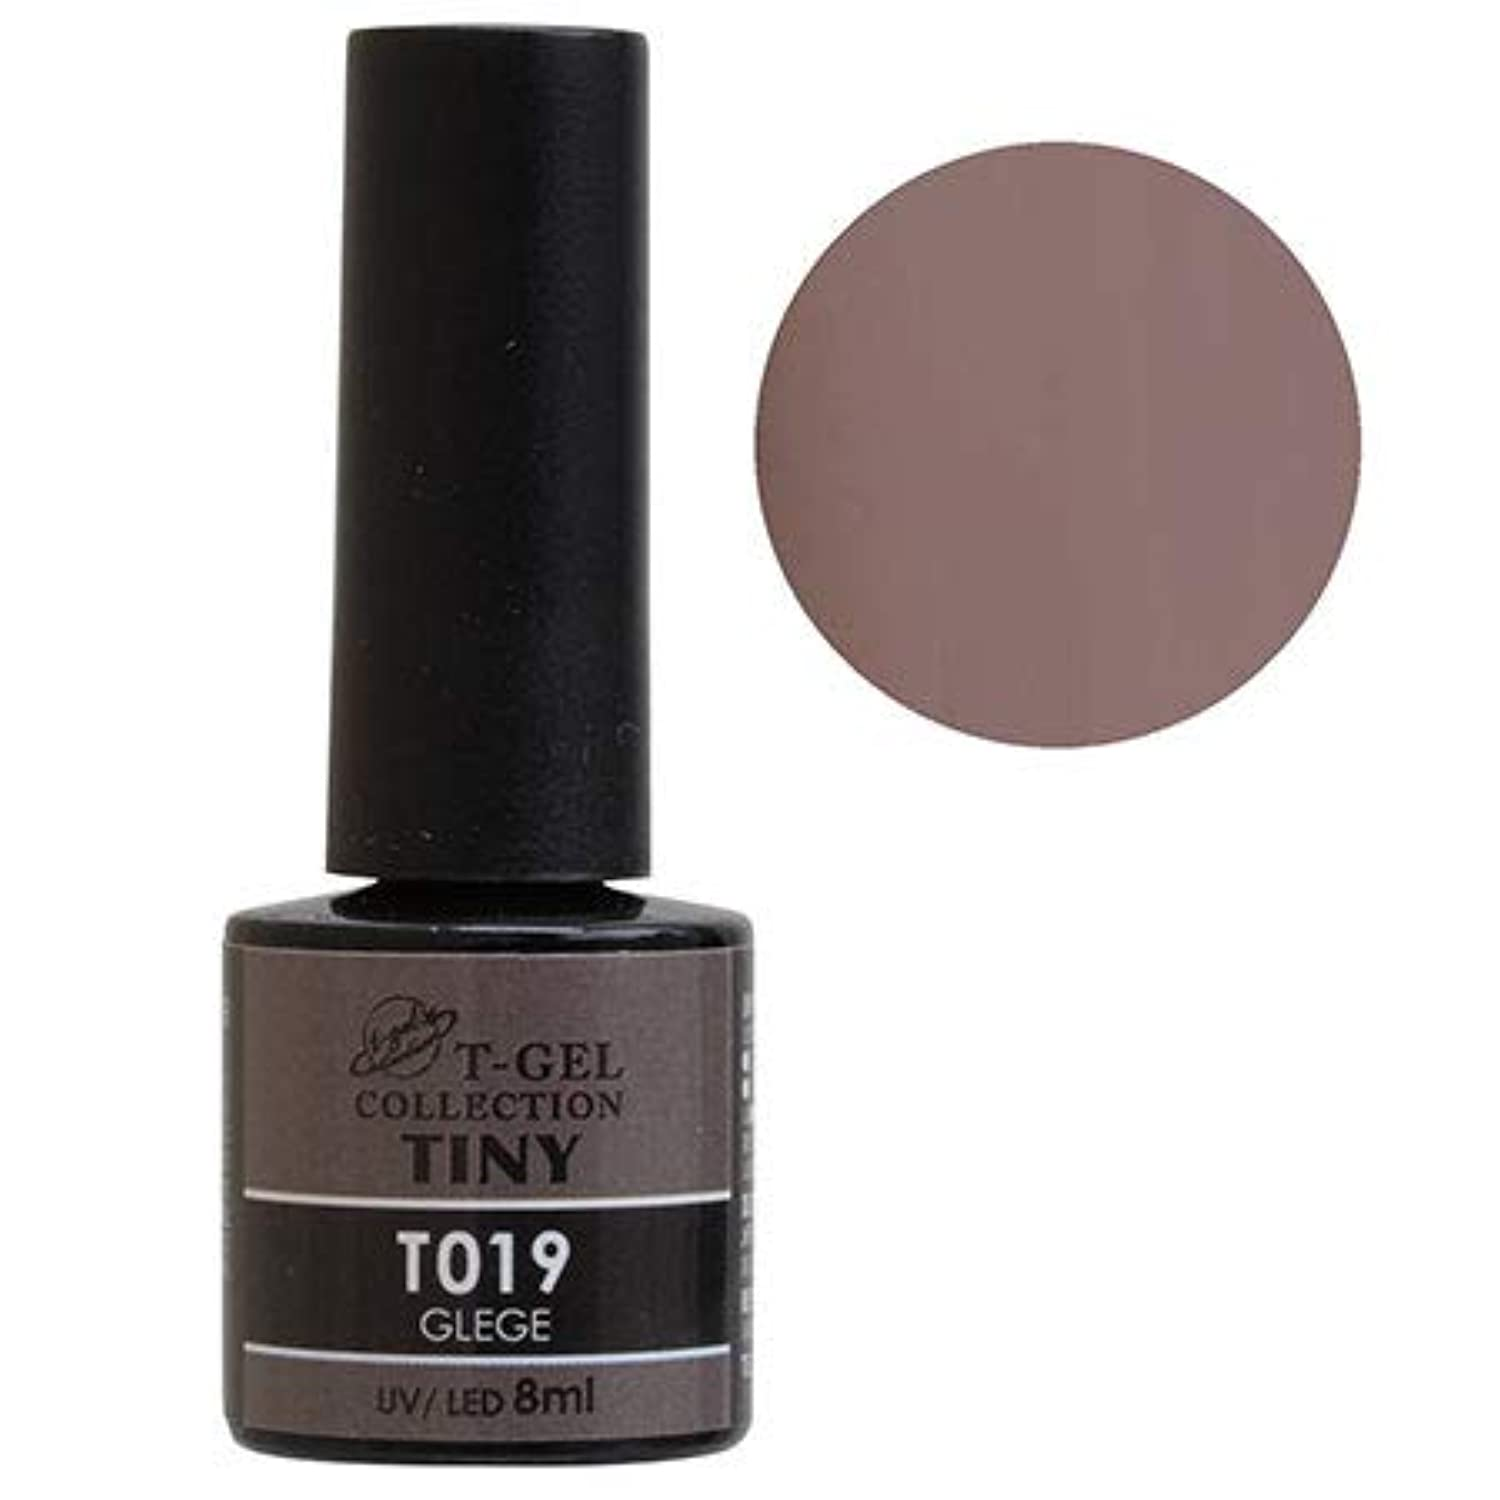 T-GEL COLLECTION TINY T019 グレージュ 8ml